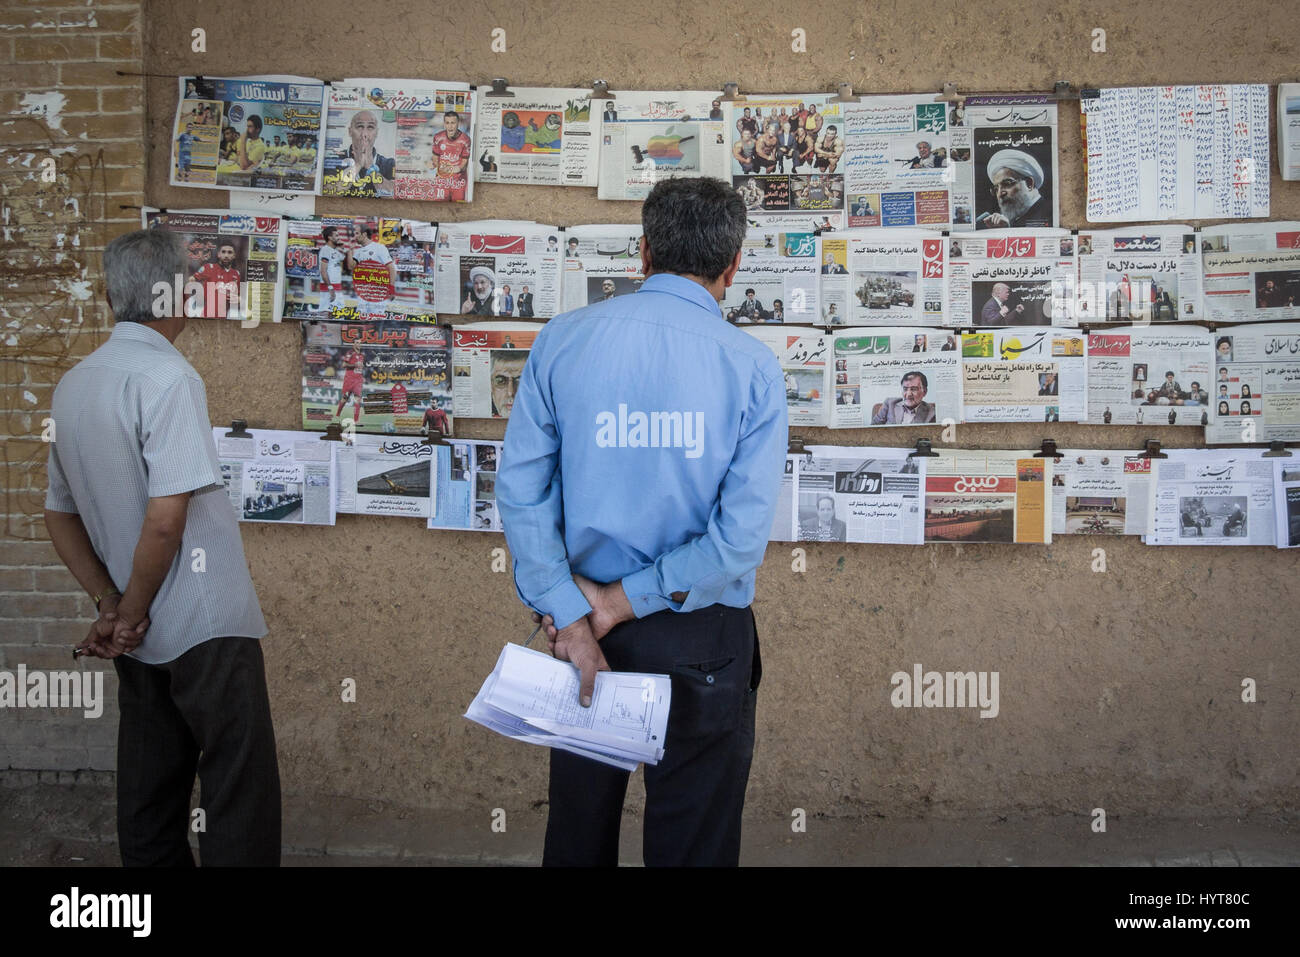 It is customary in some regions of Iran to hang newspapers in order for people to check their contents before buying. - Stock Image